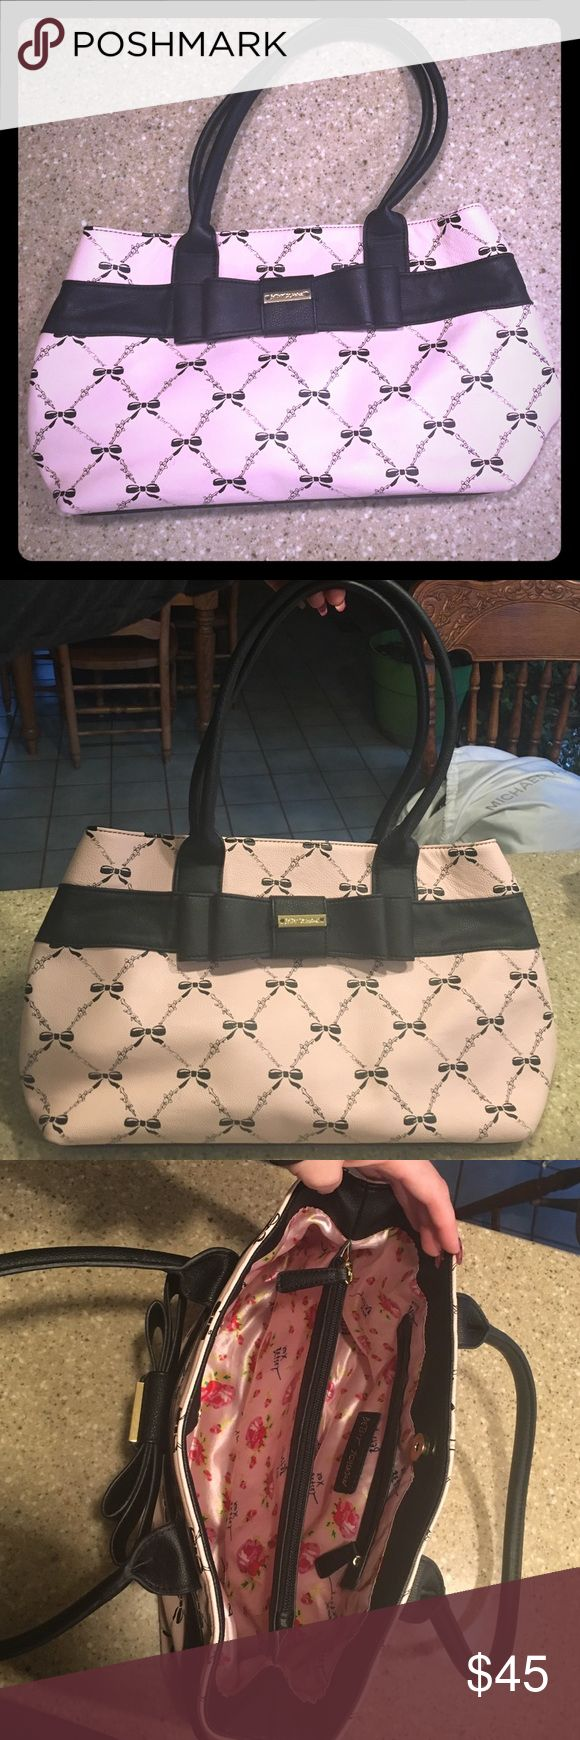 Betsey Johnson black bow, pink purse. Cute medium sized bag used a few times. Large black bow in the front with a gold Betsey Johnson embellishment. Betsey Johnson Bags